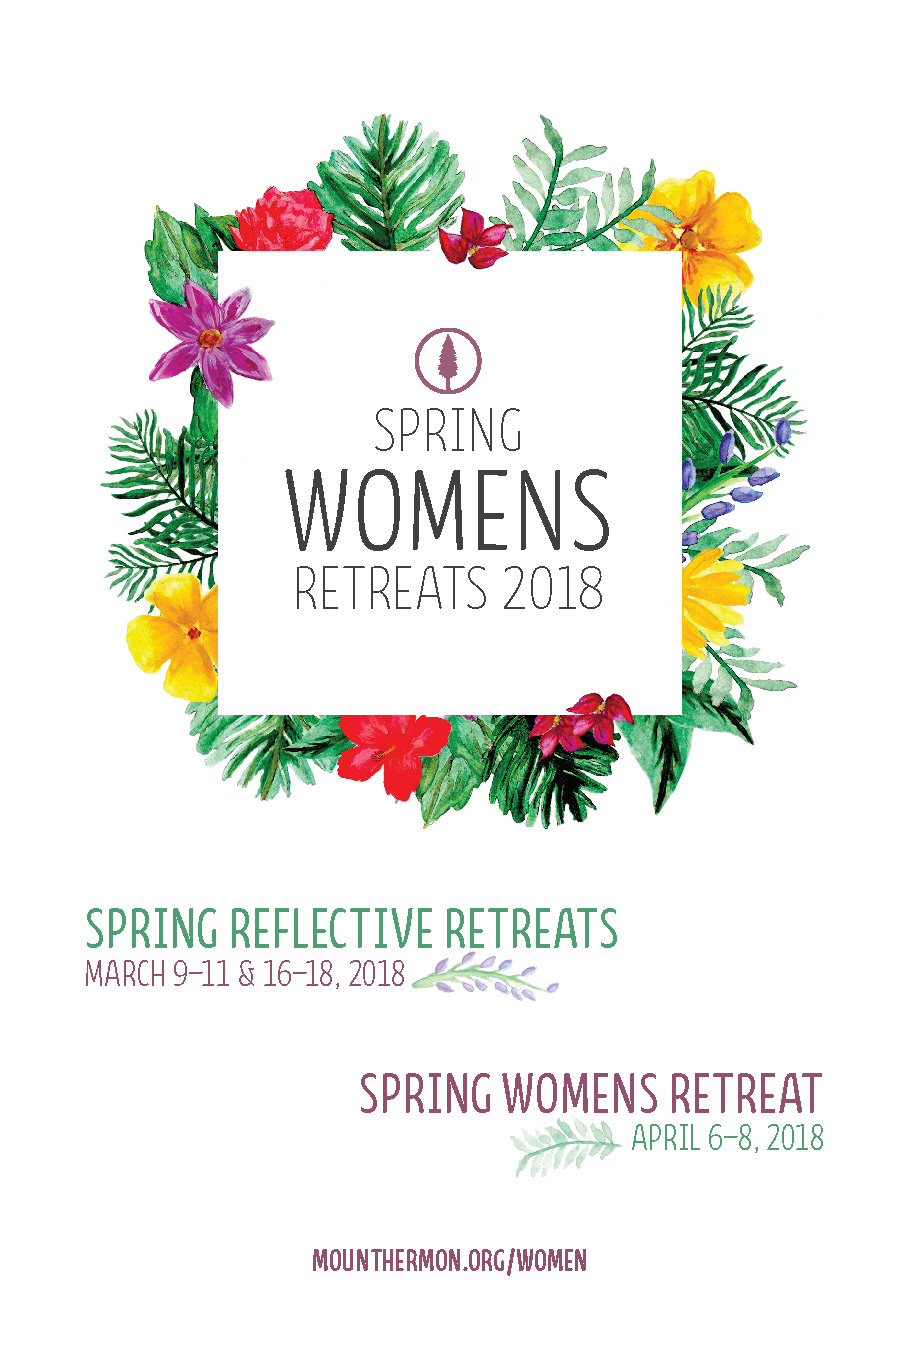 Spring 2018 Women's Retreats Poster